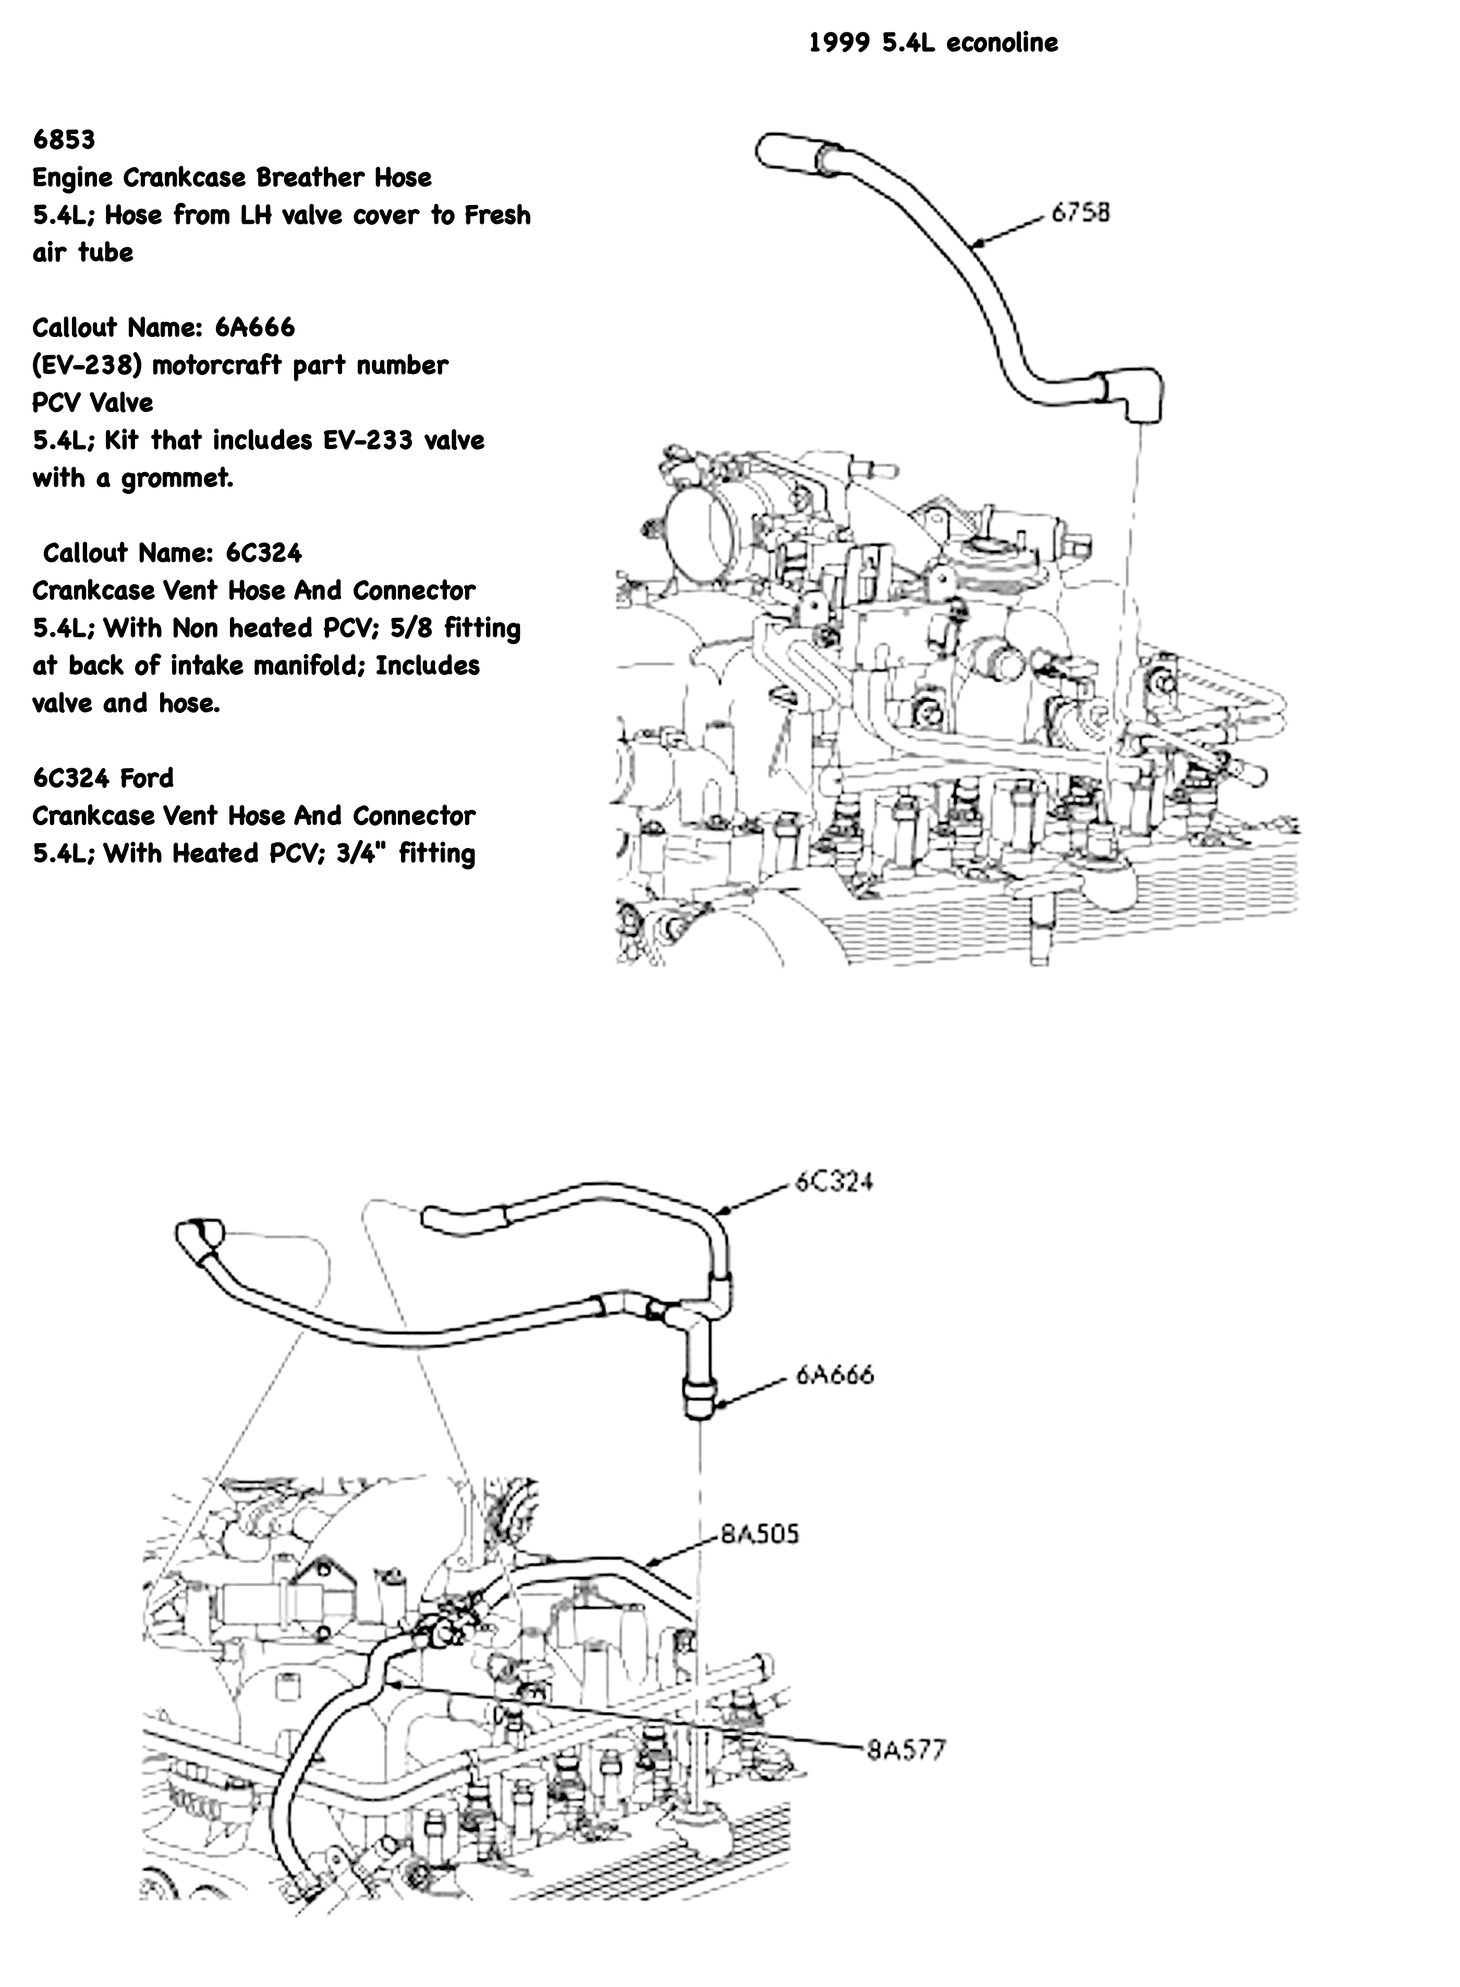 Ford 5 4 Liter Engine Diagram Guide And Troubleshooting Of Wiring Triton V8 Hose Library Rh 16 Budoshop4you De Parts 54